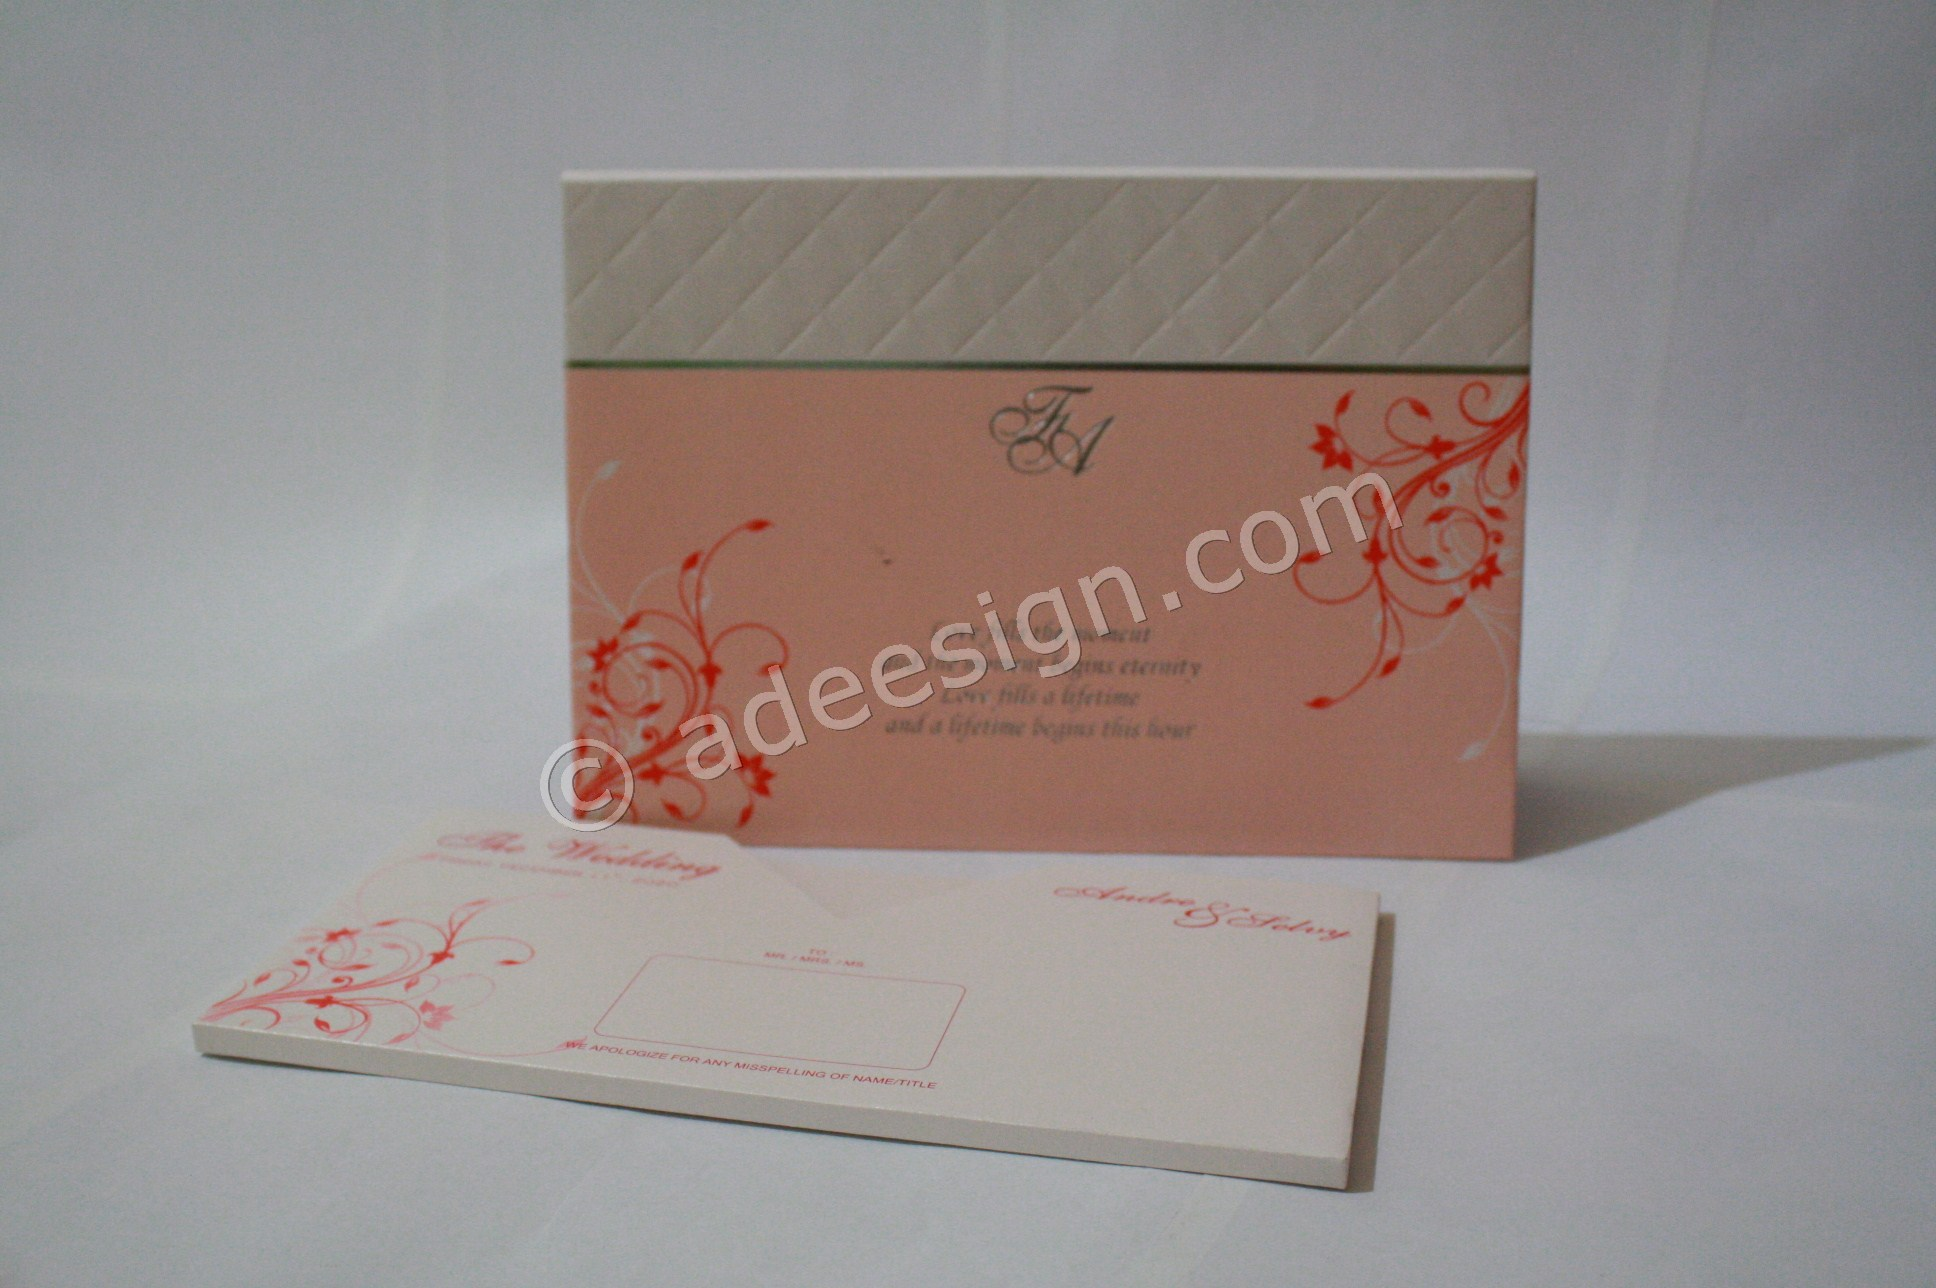 Undangan Pernikahan Hardcover ED63 - Percetakan Wedding Invitations Unik dan Simple di Dukuh Sutorejo